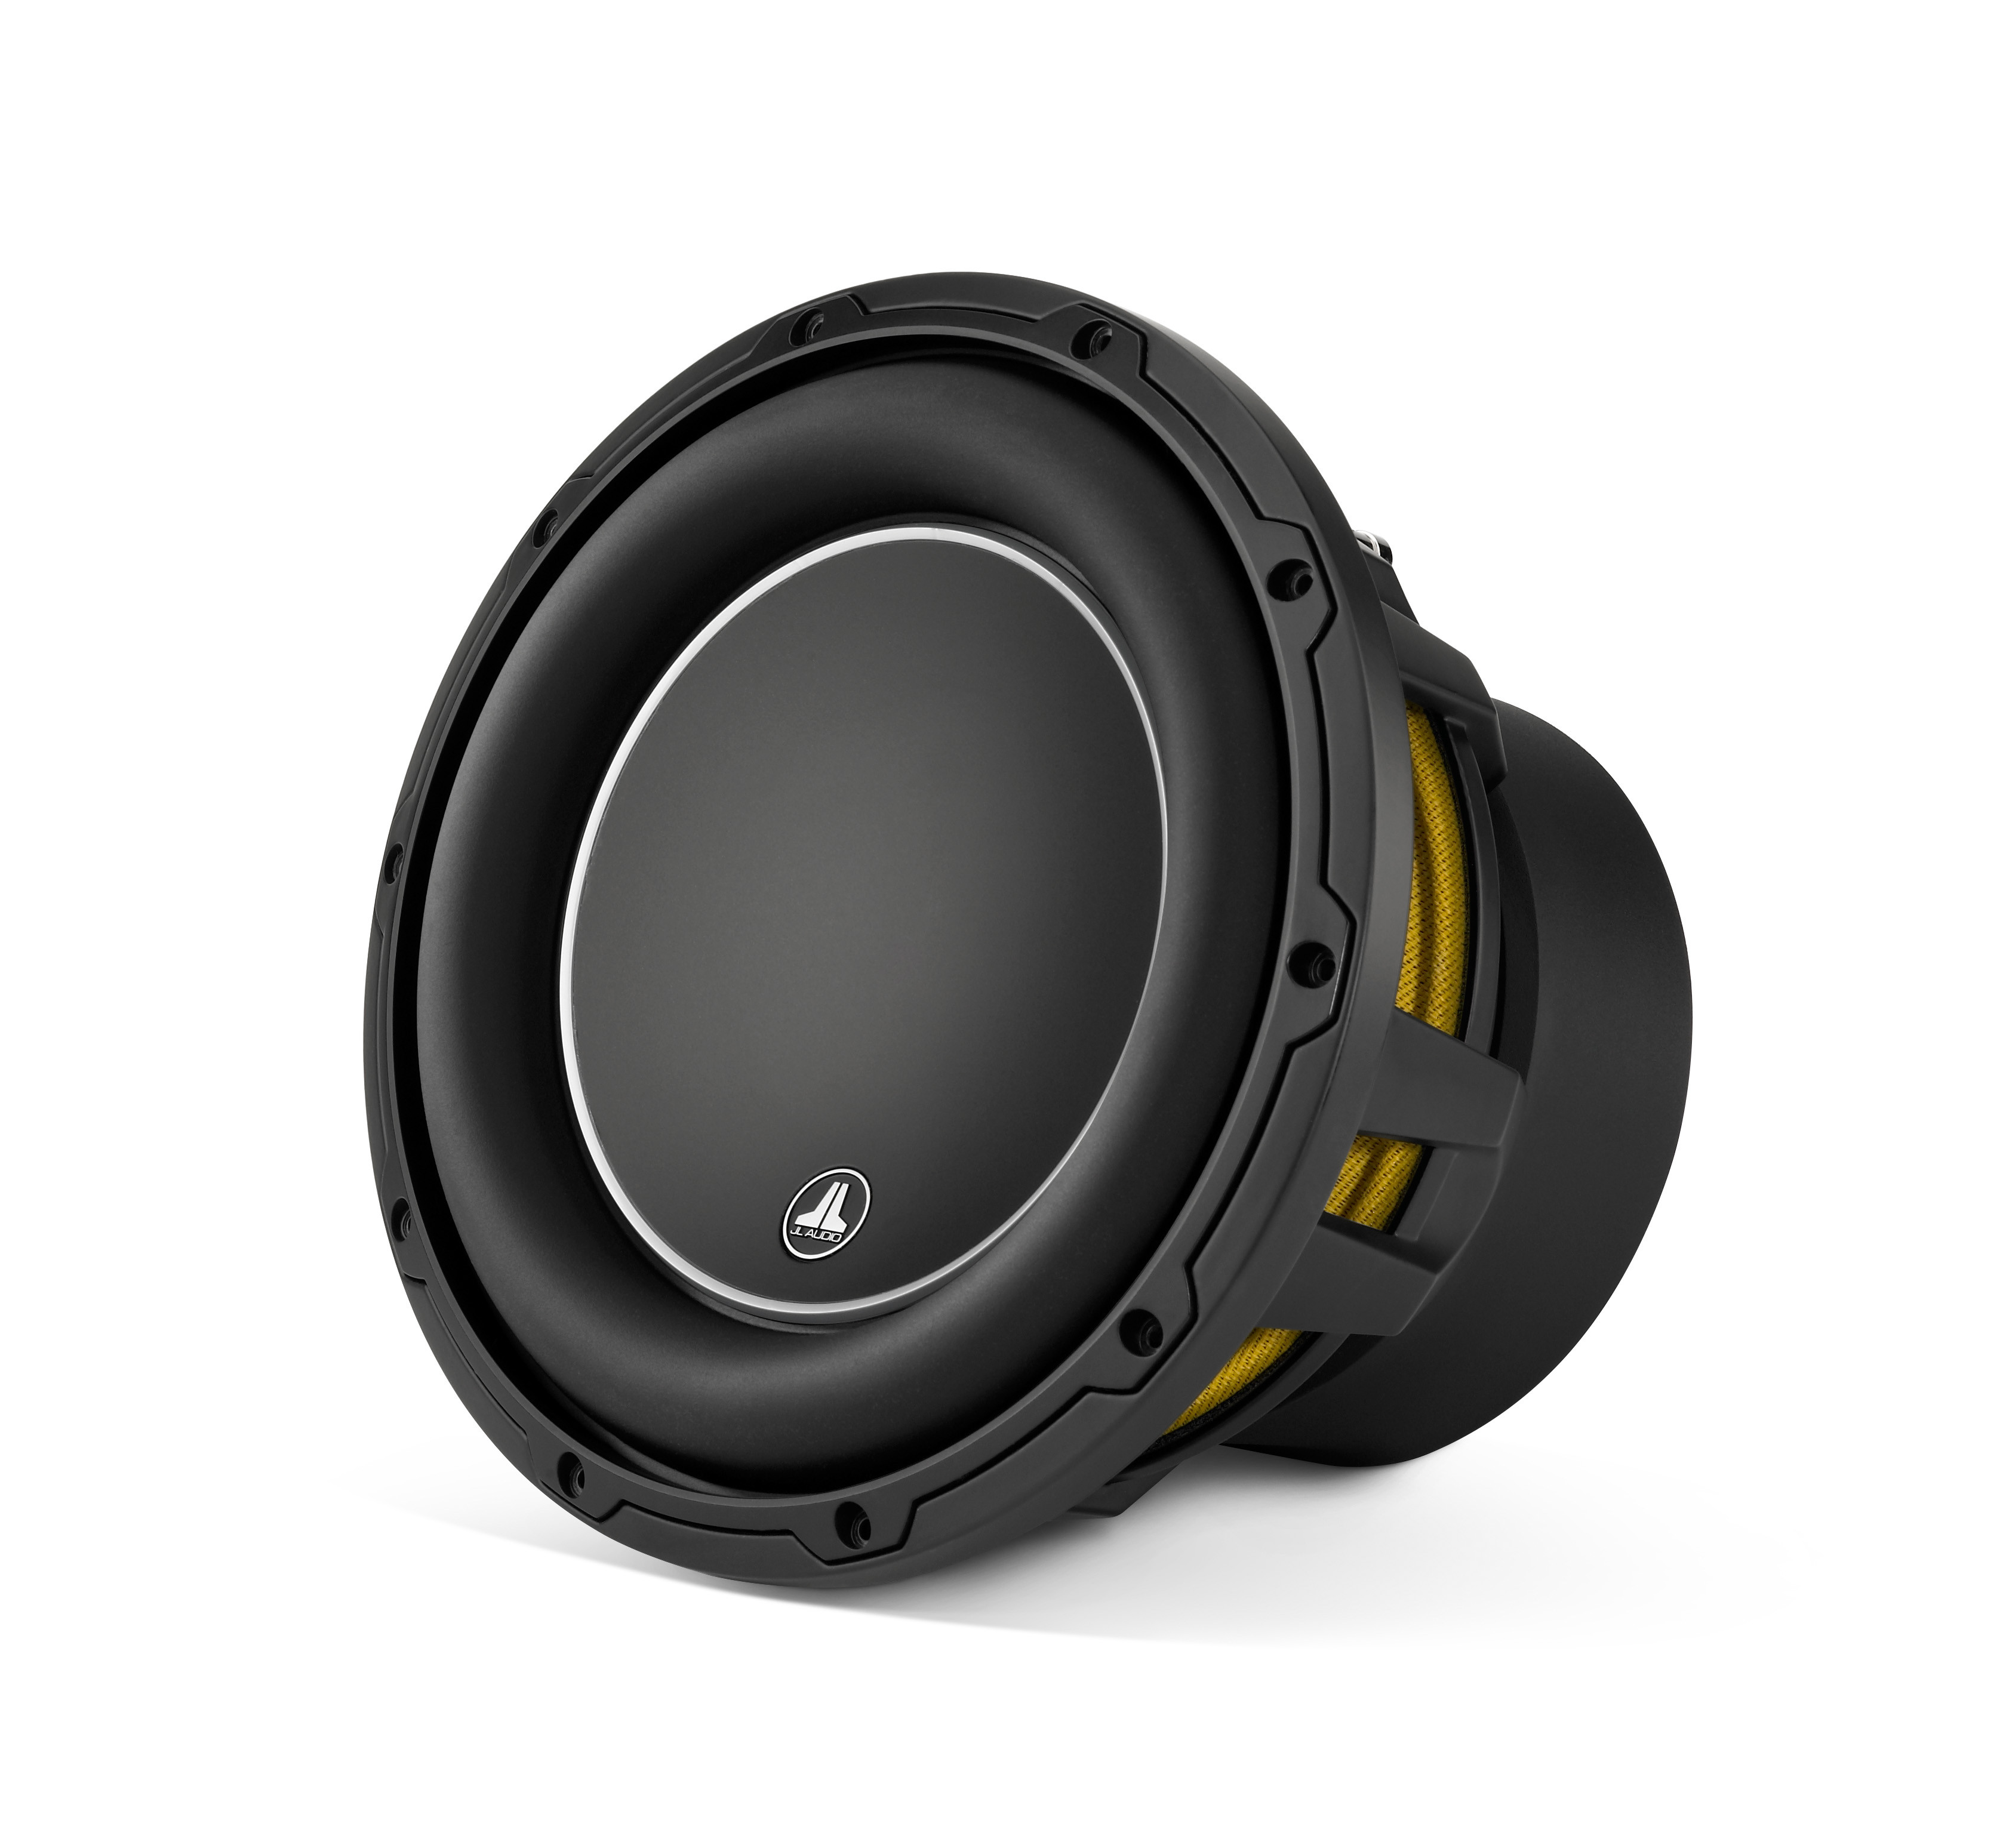 Jl audio 10w6v3 d4 10 inch 250 mm subwoofer driver dual 4 jl audio 10w6v3 d4 10 inch 250 mm subwoofer driver dual sciox Gallery